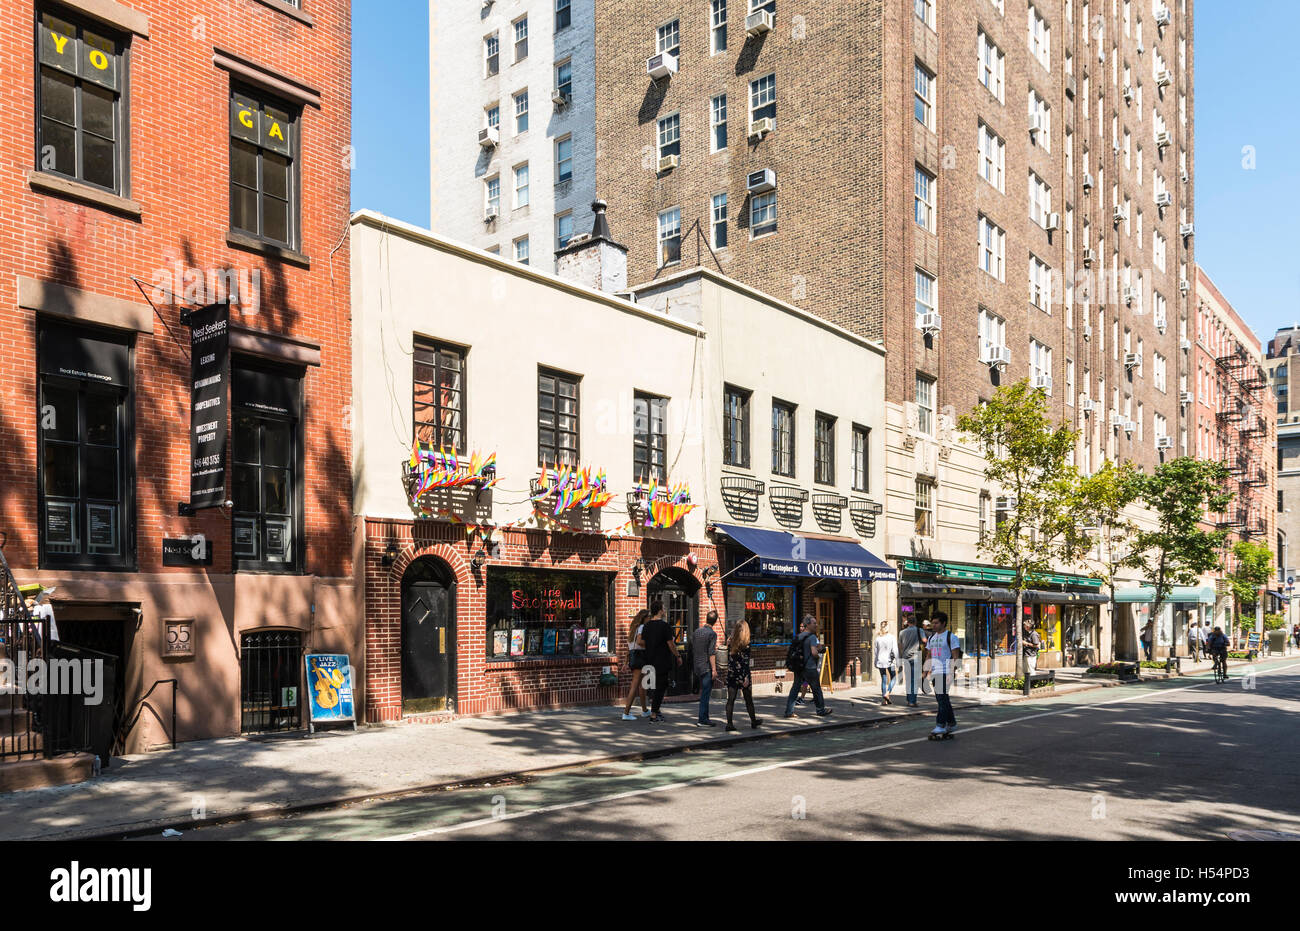 Stonewall Inn gay bar building exterior, now landmarked, is iconic in the gay rights movement - Stock Image